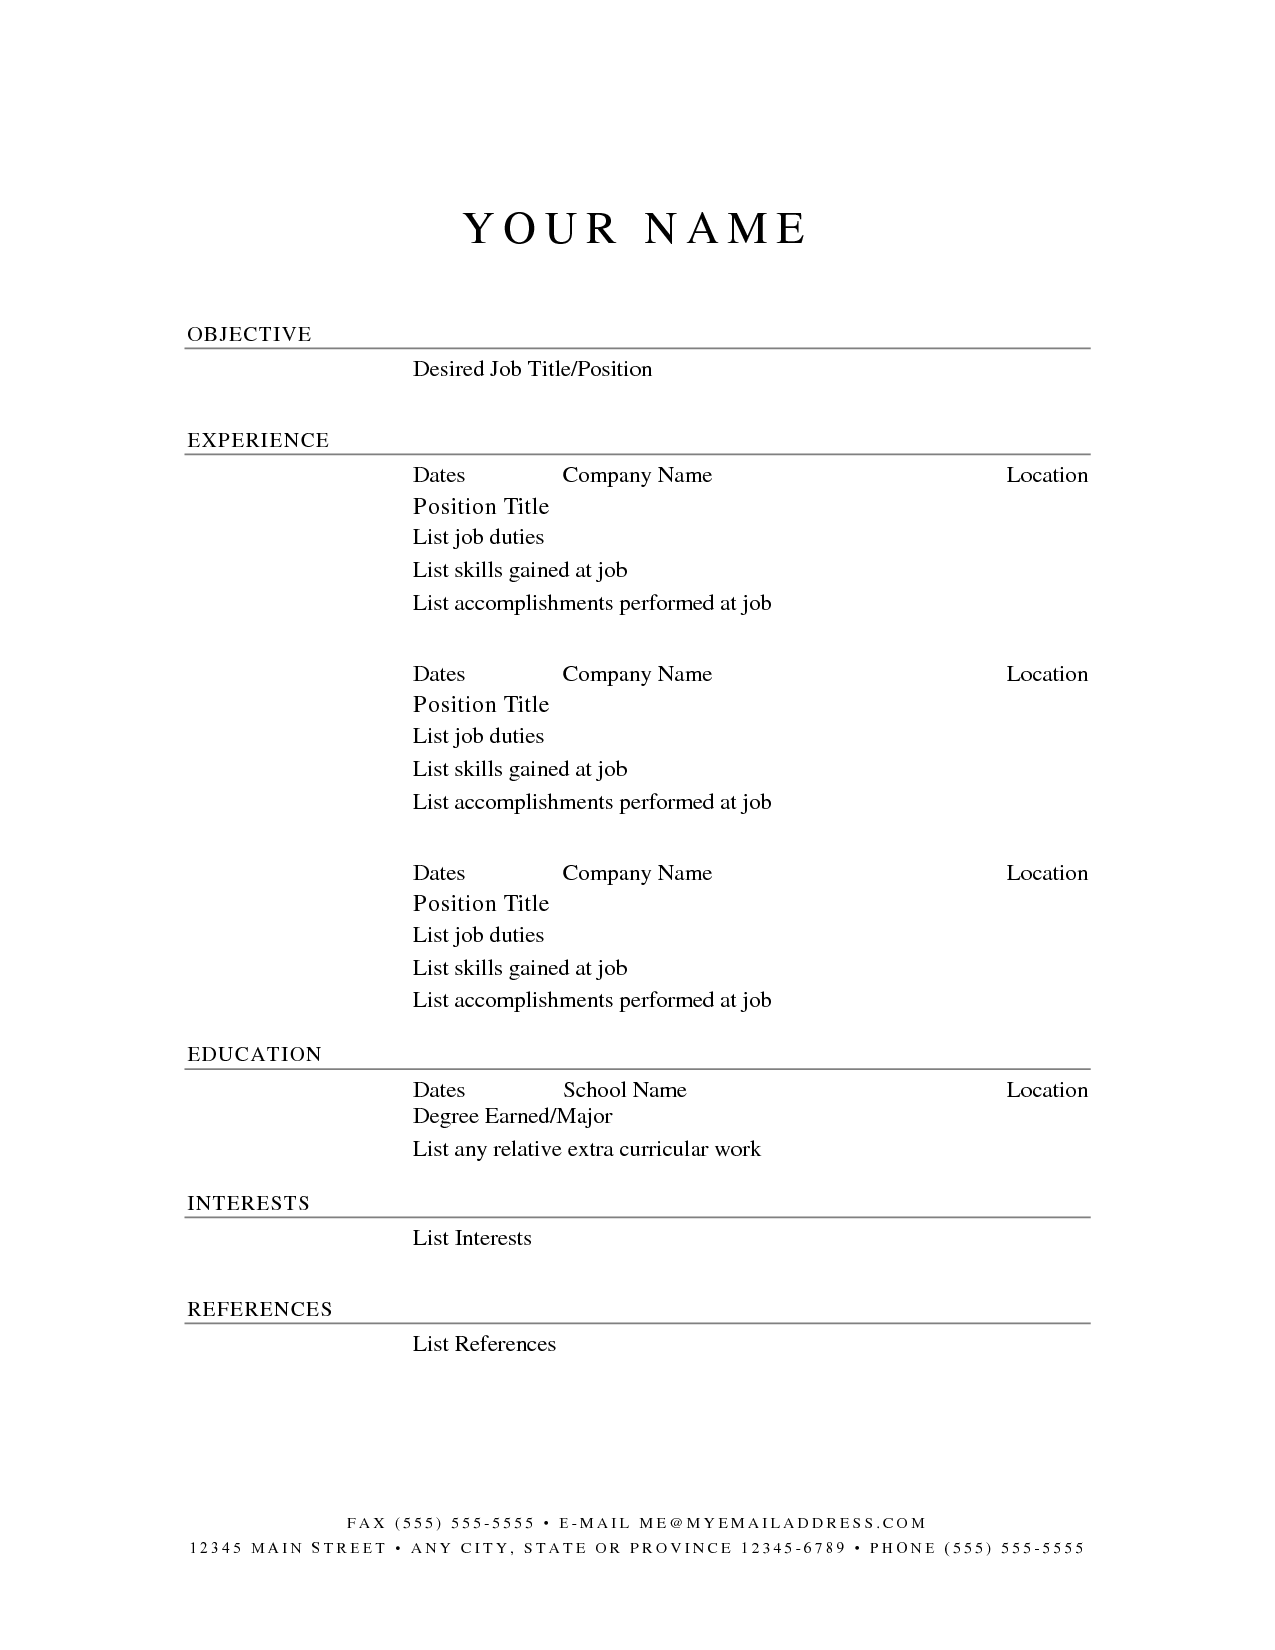 printable sample resume templates resumecareer printable sample resume templates resumecareer info